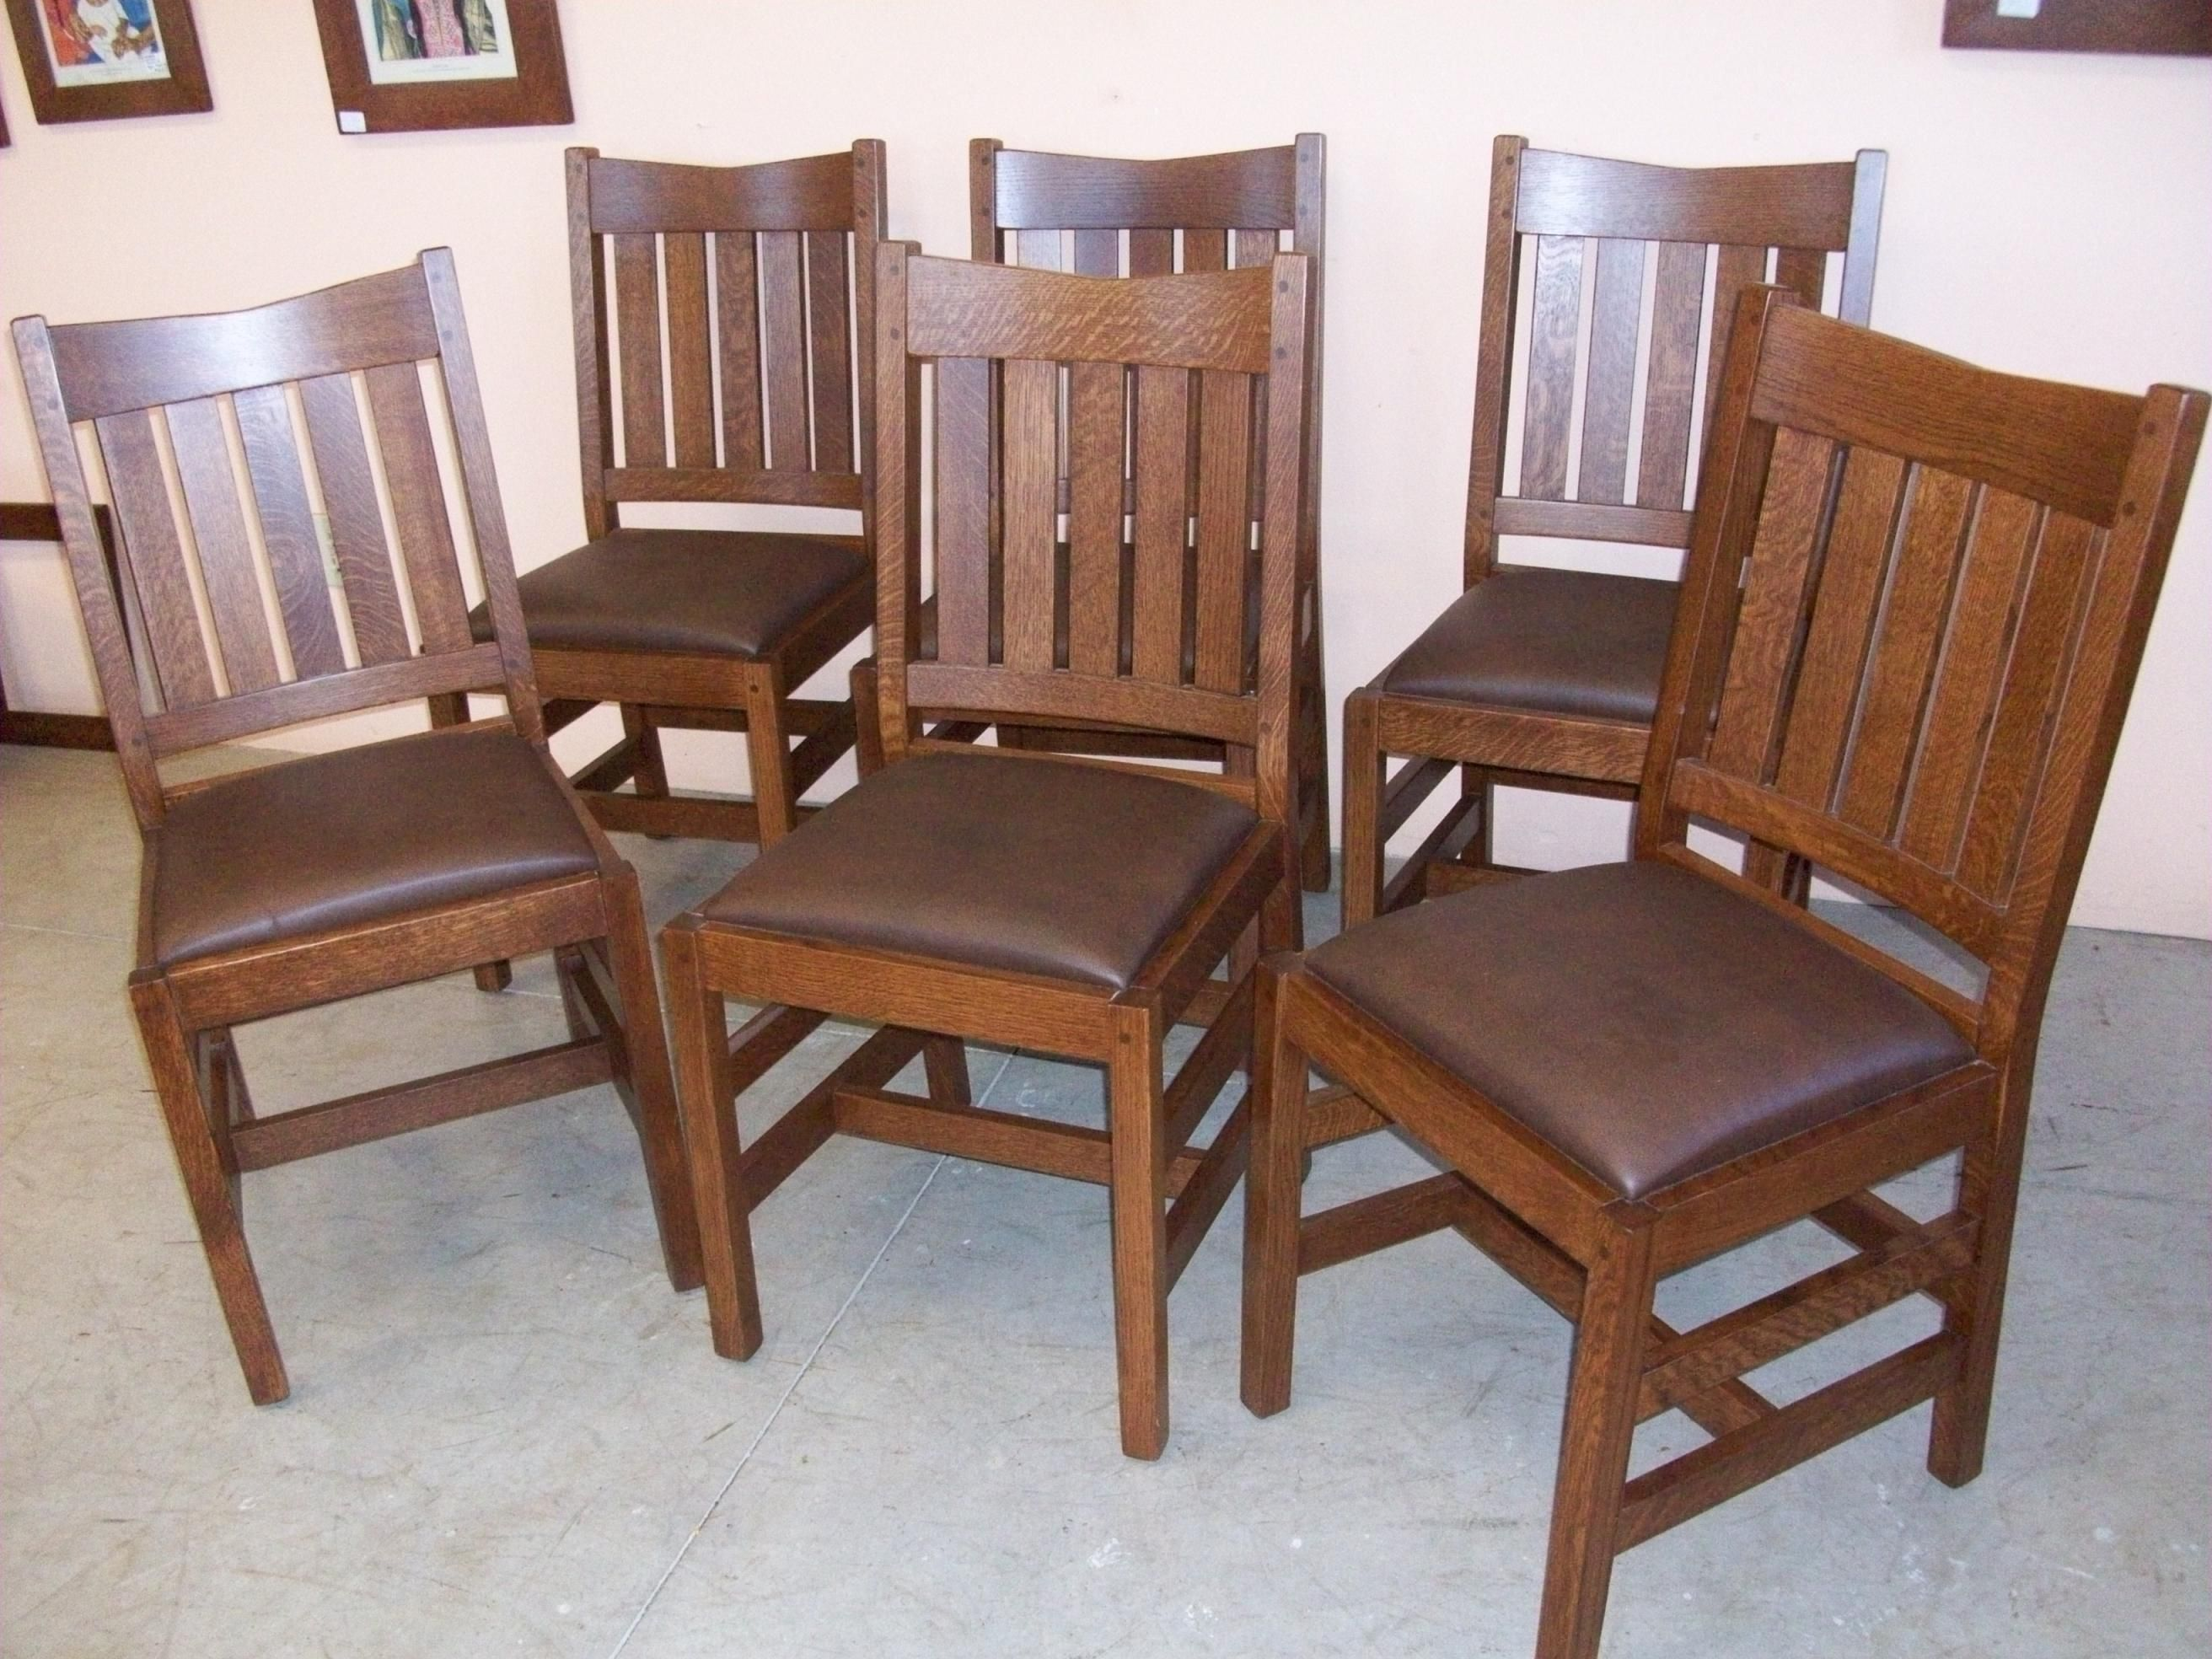 Set of 6 new mission oak dining chairs home living for Wooden dining room chairs